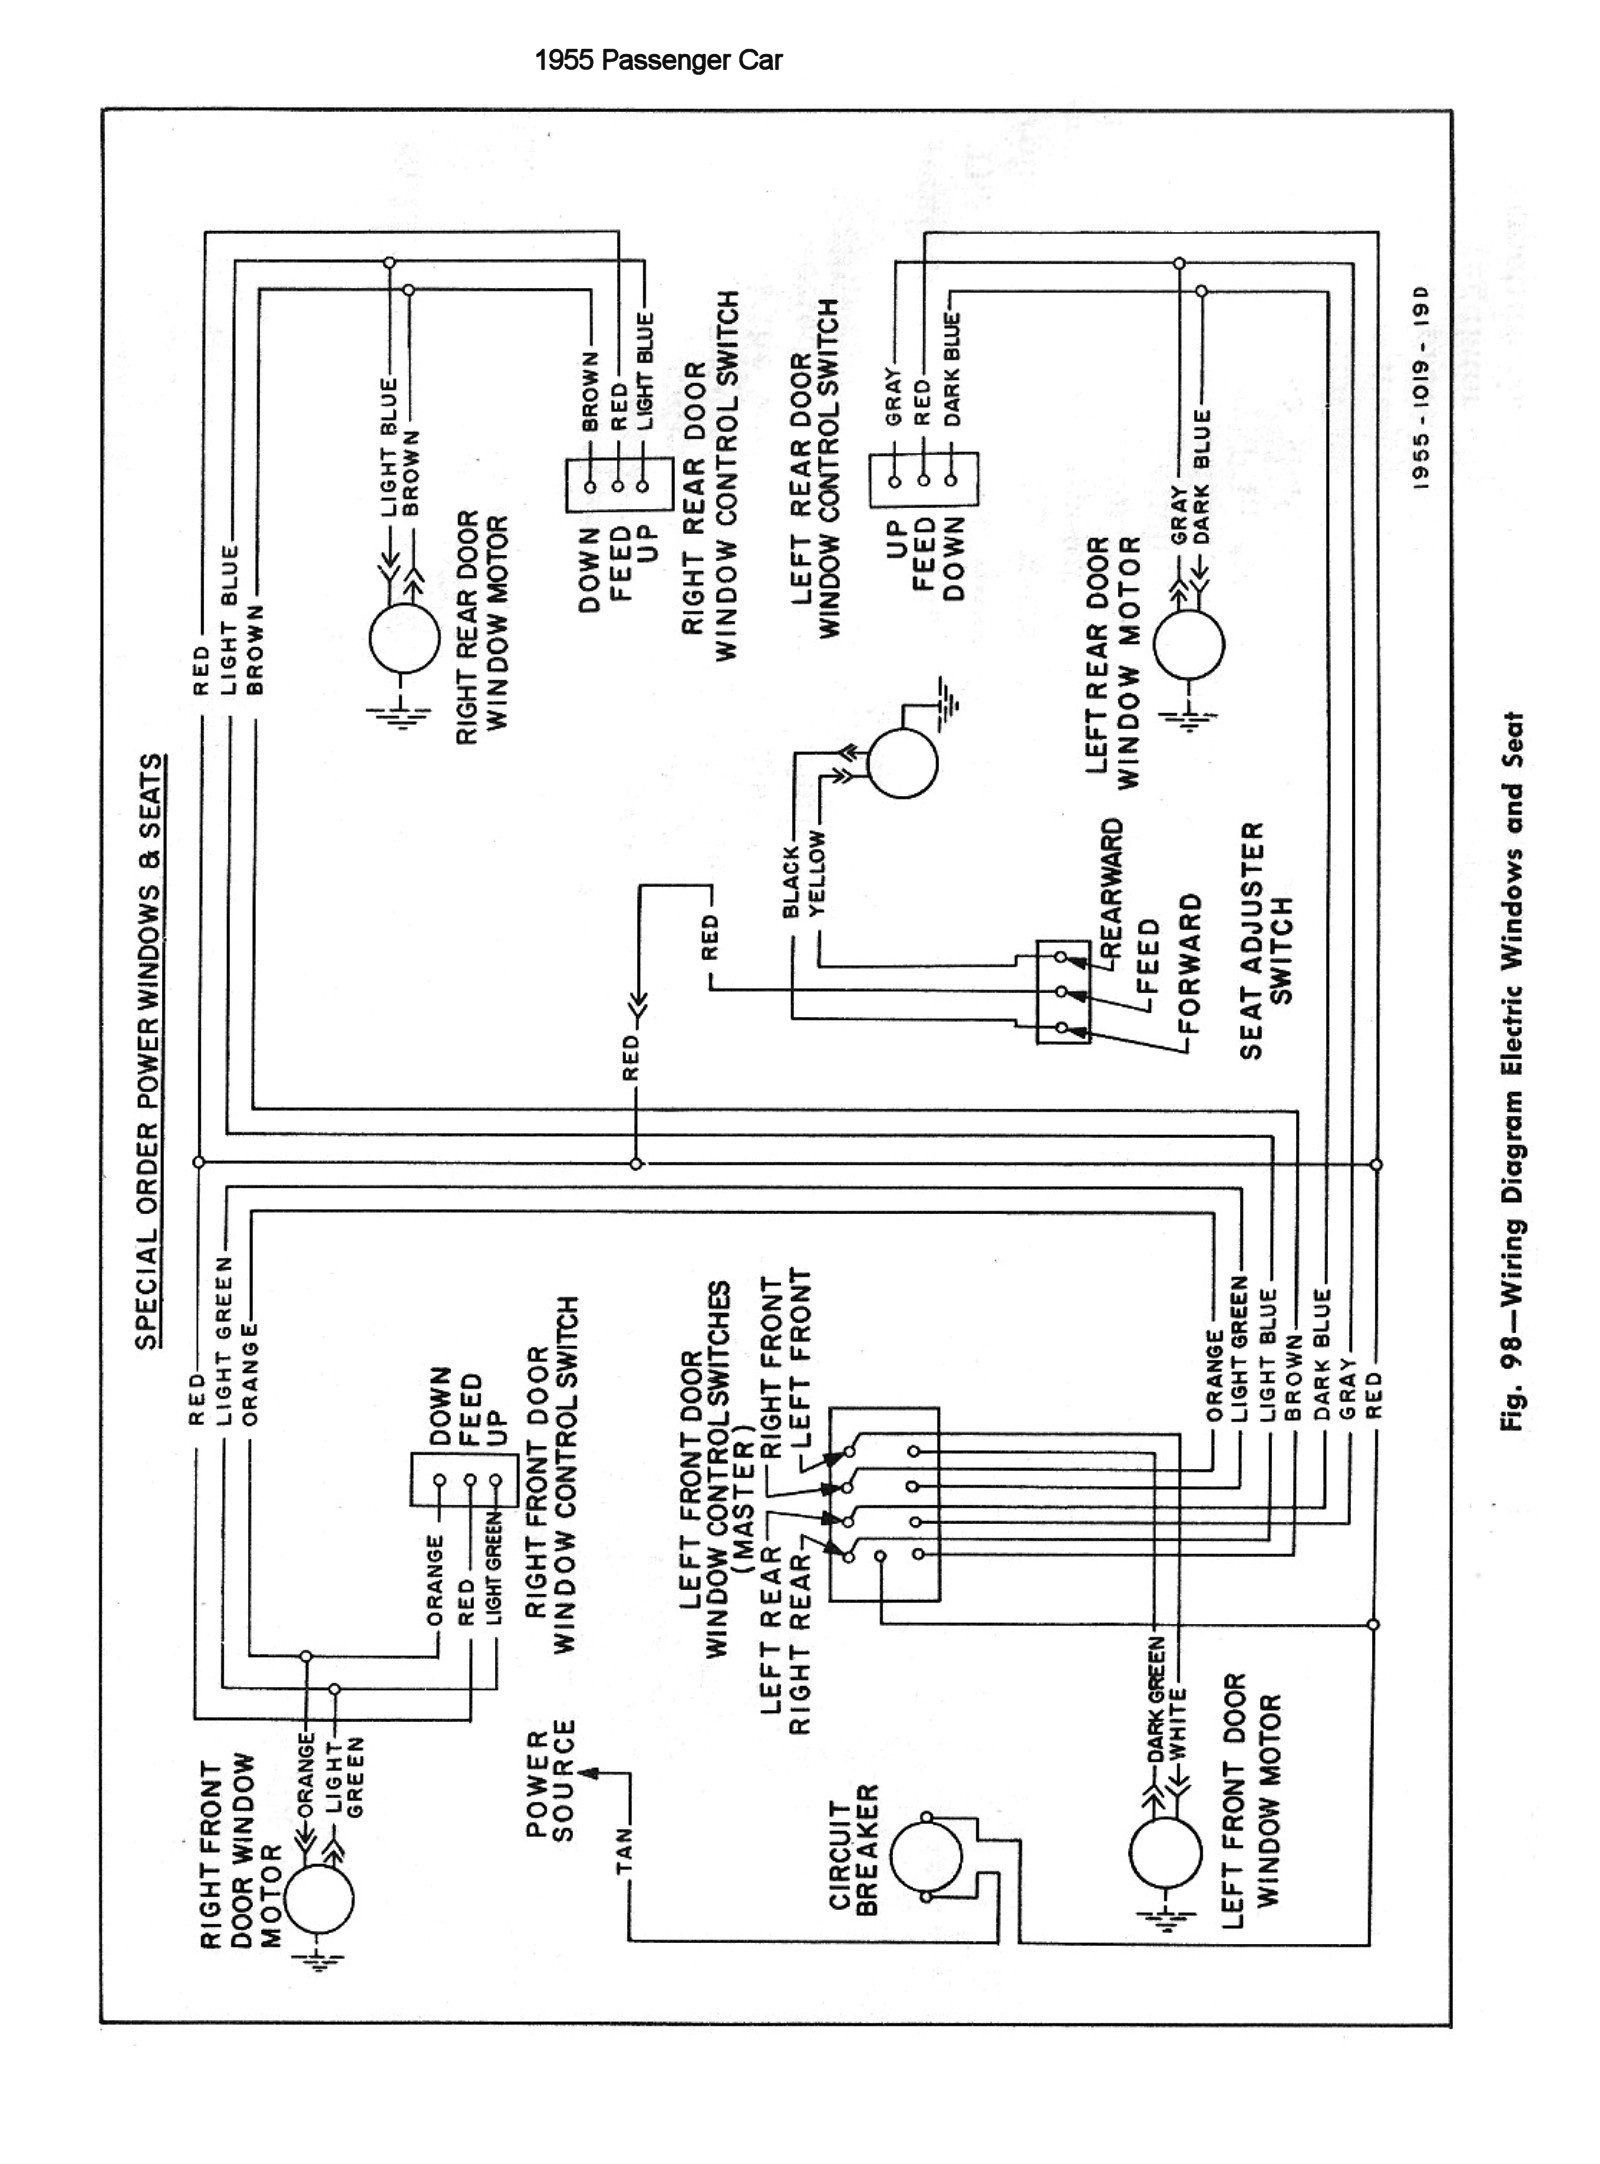 1955 chevy turn signal wiring diagram wiringdiagram org wiring diagram for 1955 chevy truck